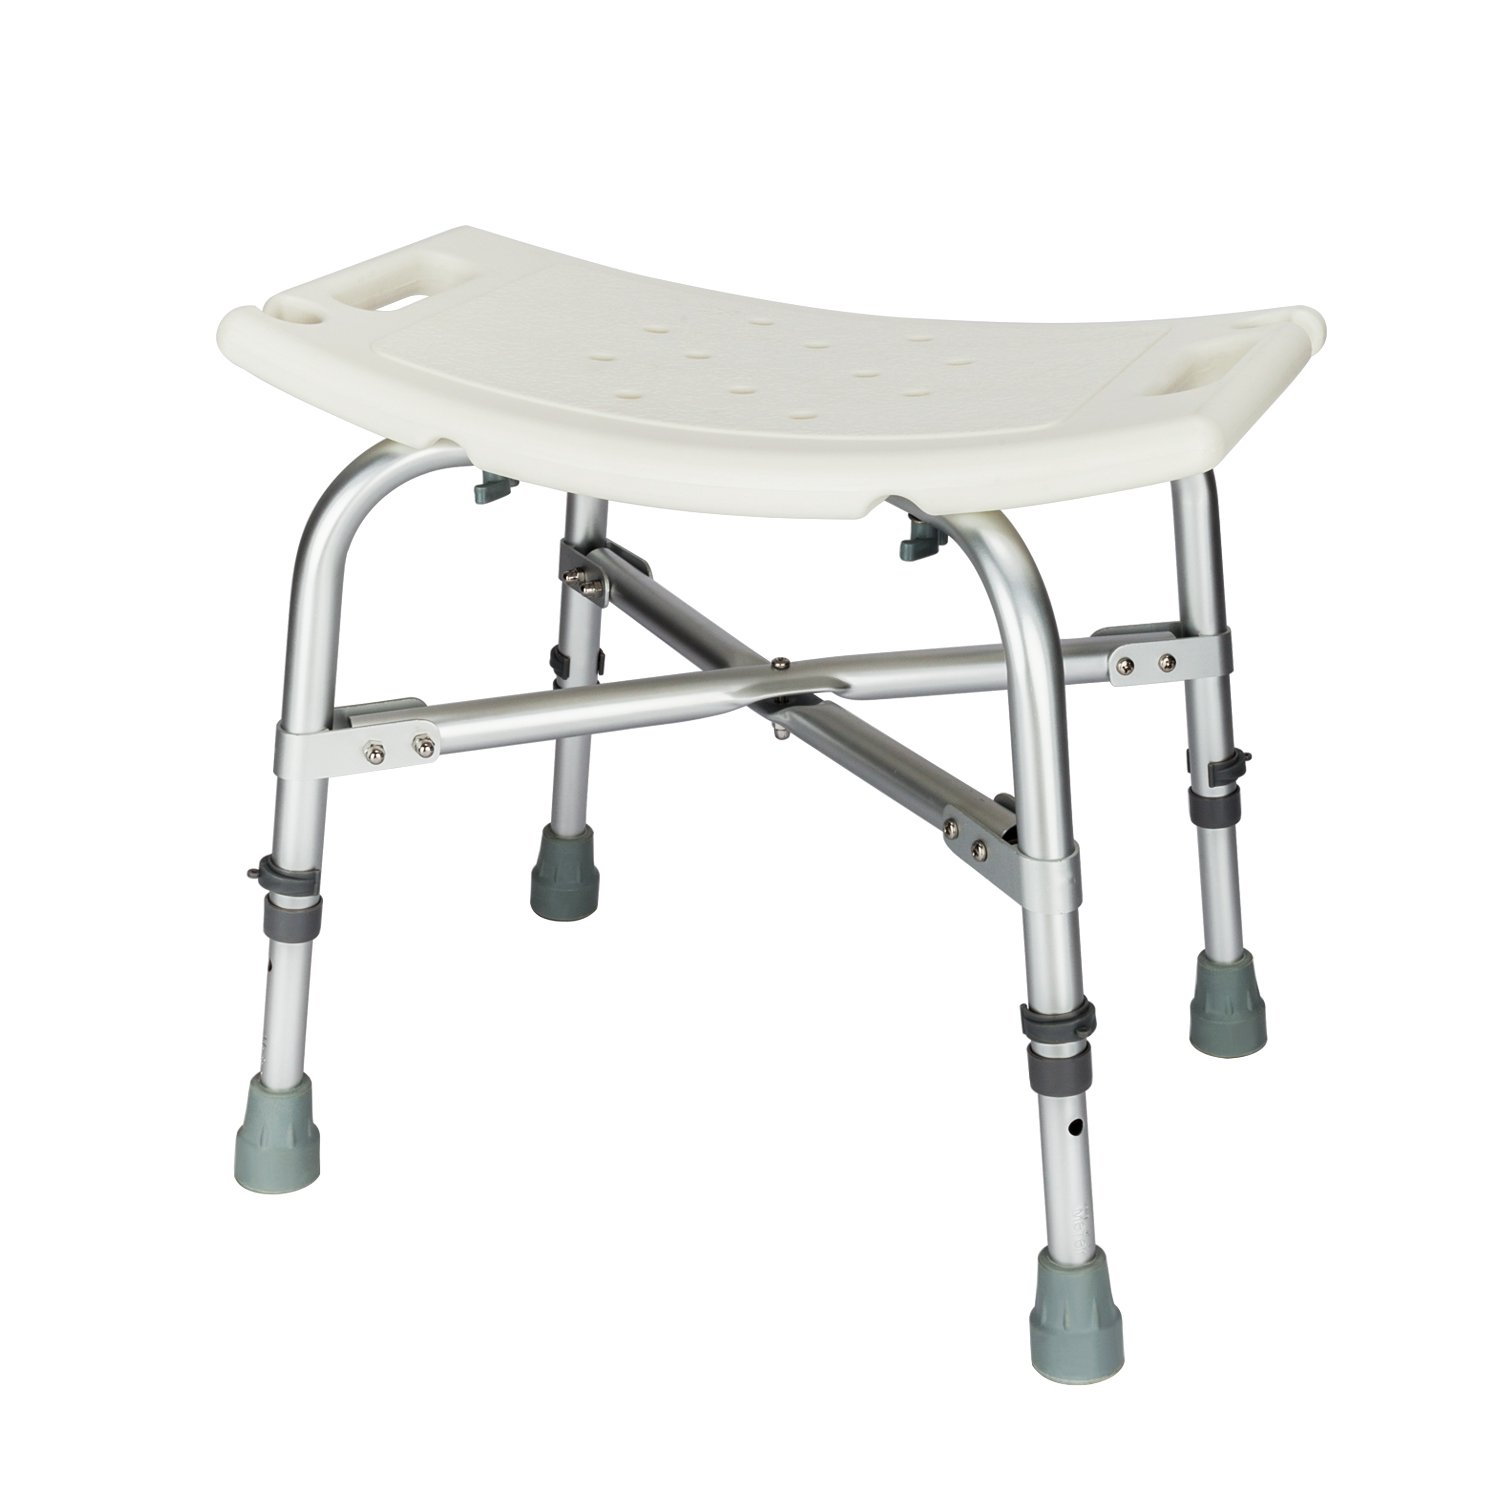 Mefeir Medical Shower Chair Bath Stool Transfer Bench Seat,Heavy Duty 450LBS Upgrade Framework SPA Bathtub Chair,No-Slip Adjustable 6 Height (Normal)